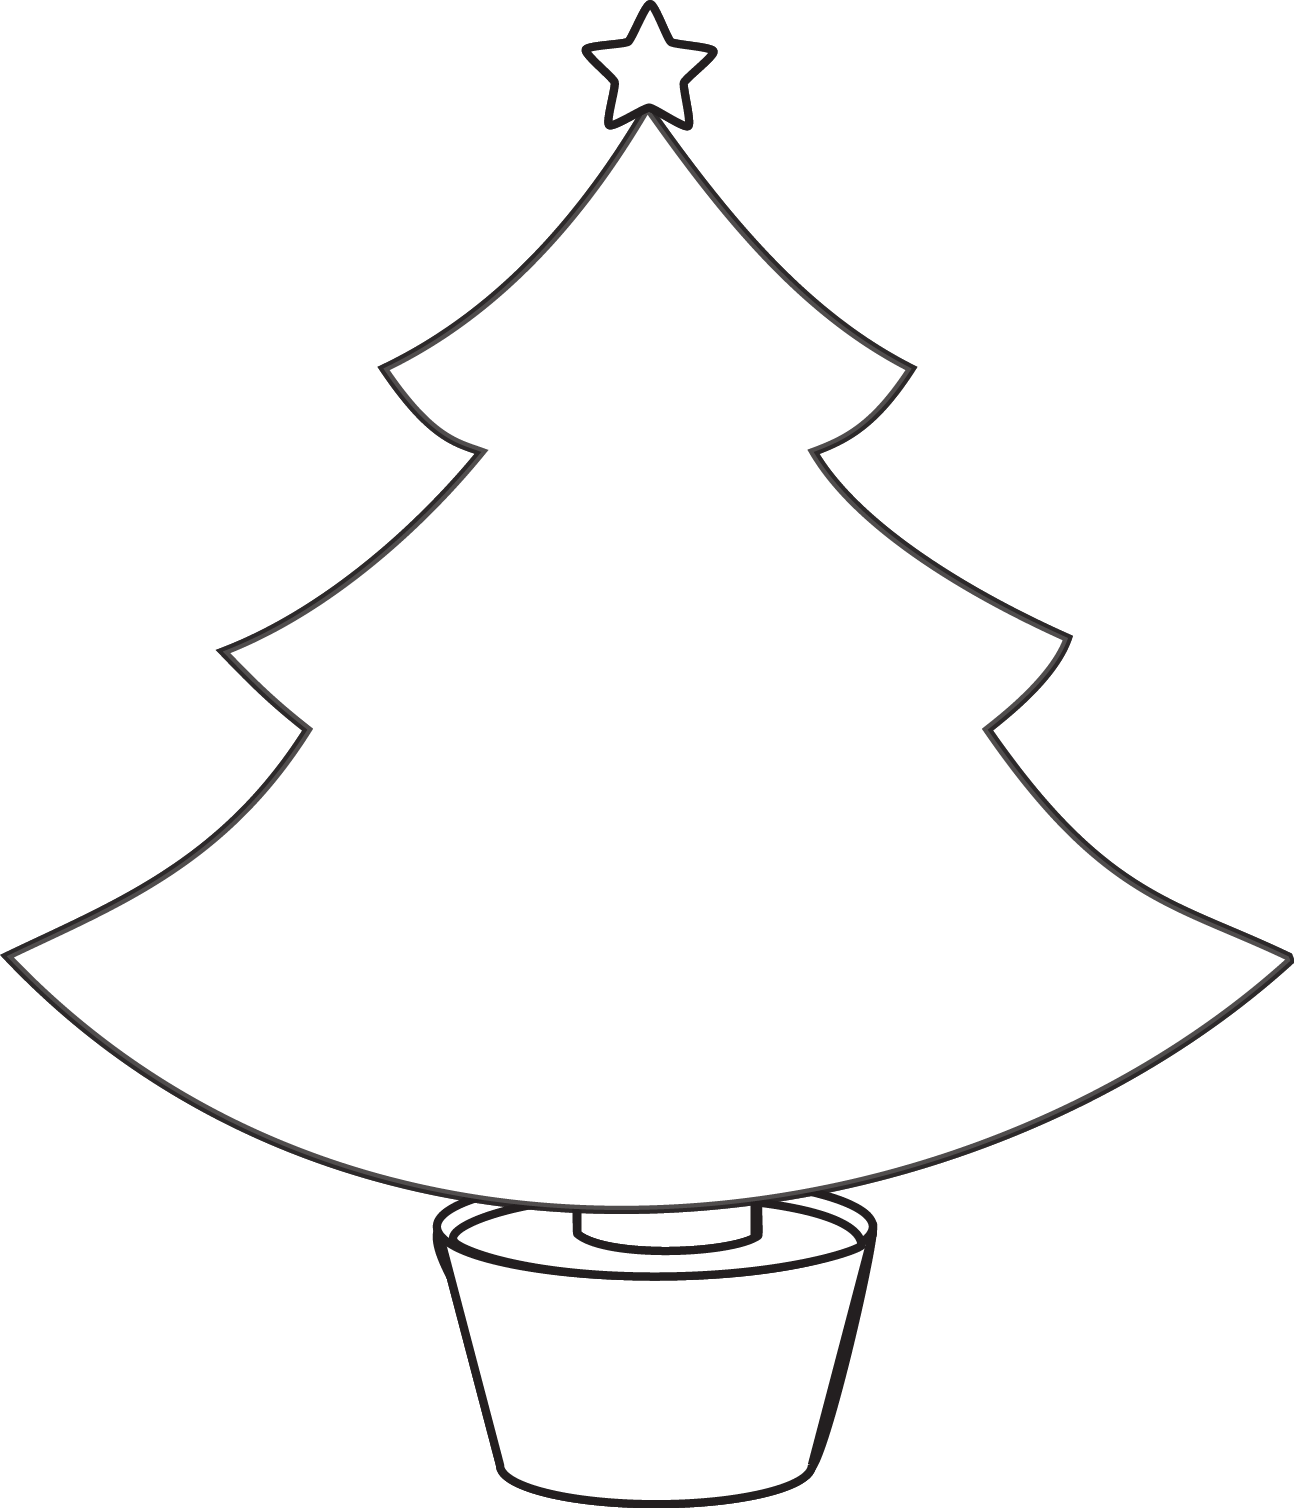 1294x1508 Present Clip Art Black And White Christmas Tree Coloring Merry